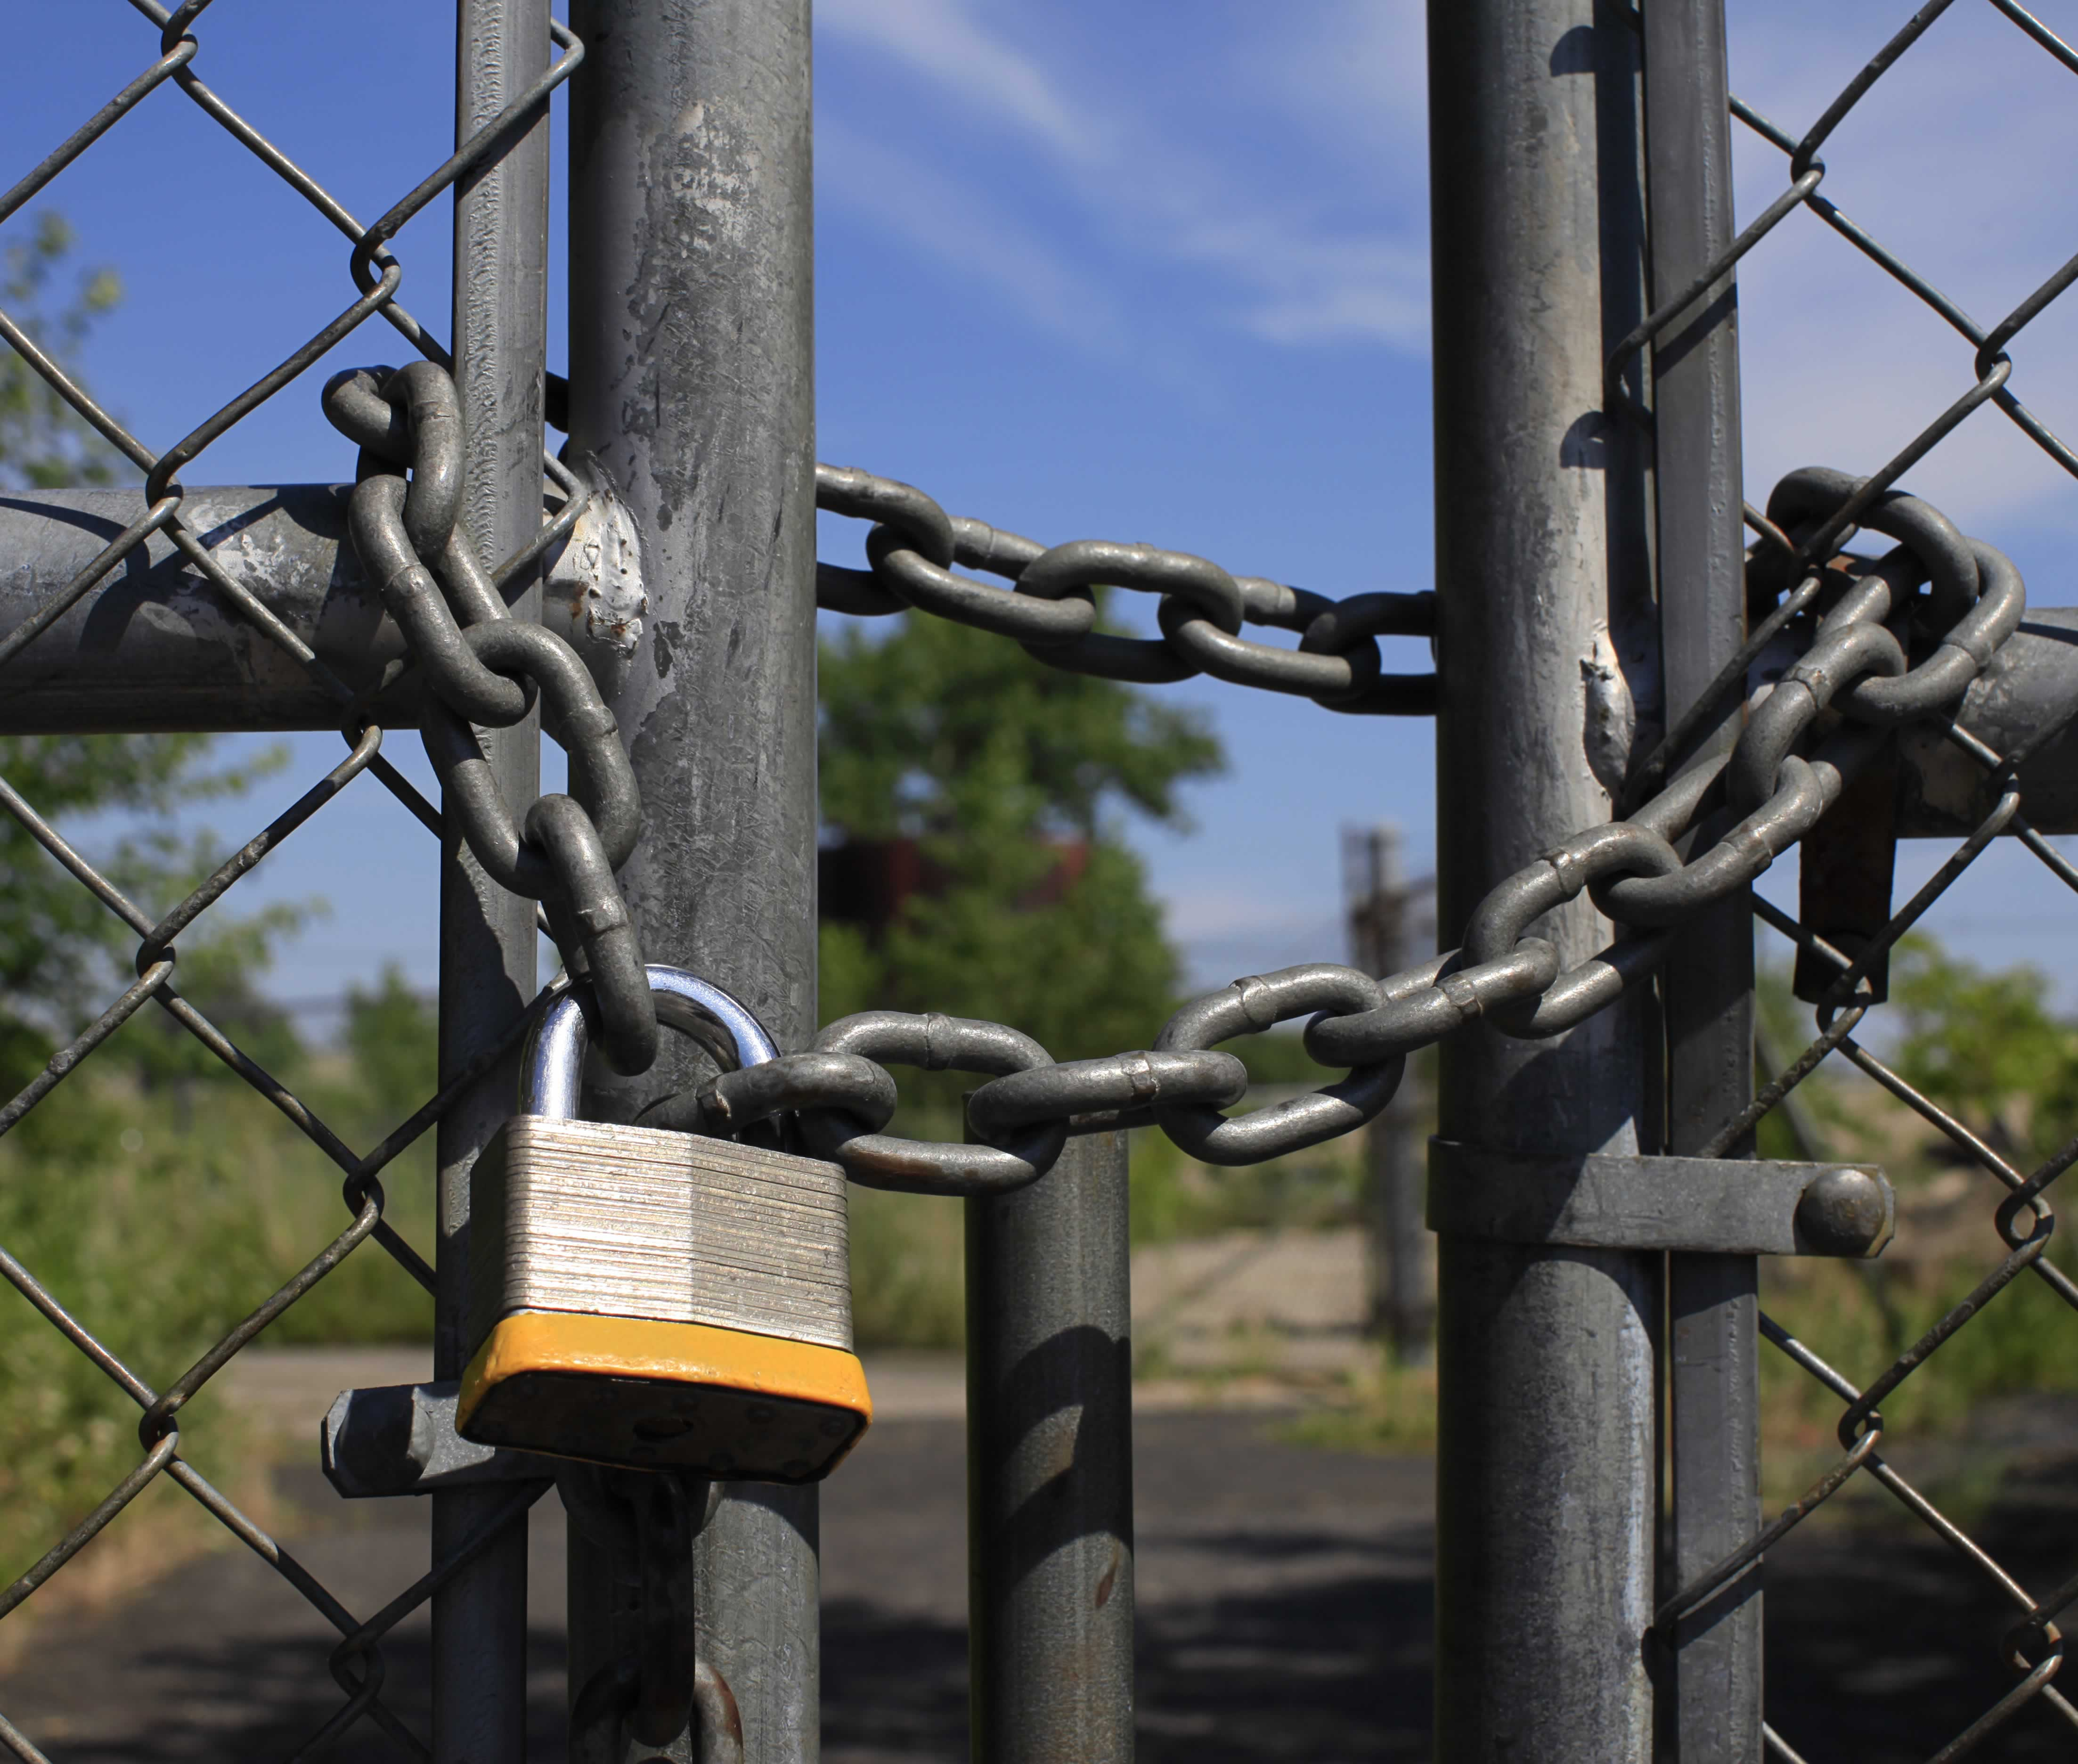 The gate to a chain-link fence is locked with a chain and padlock